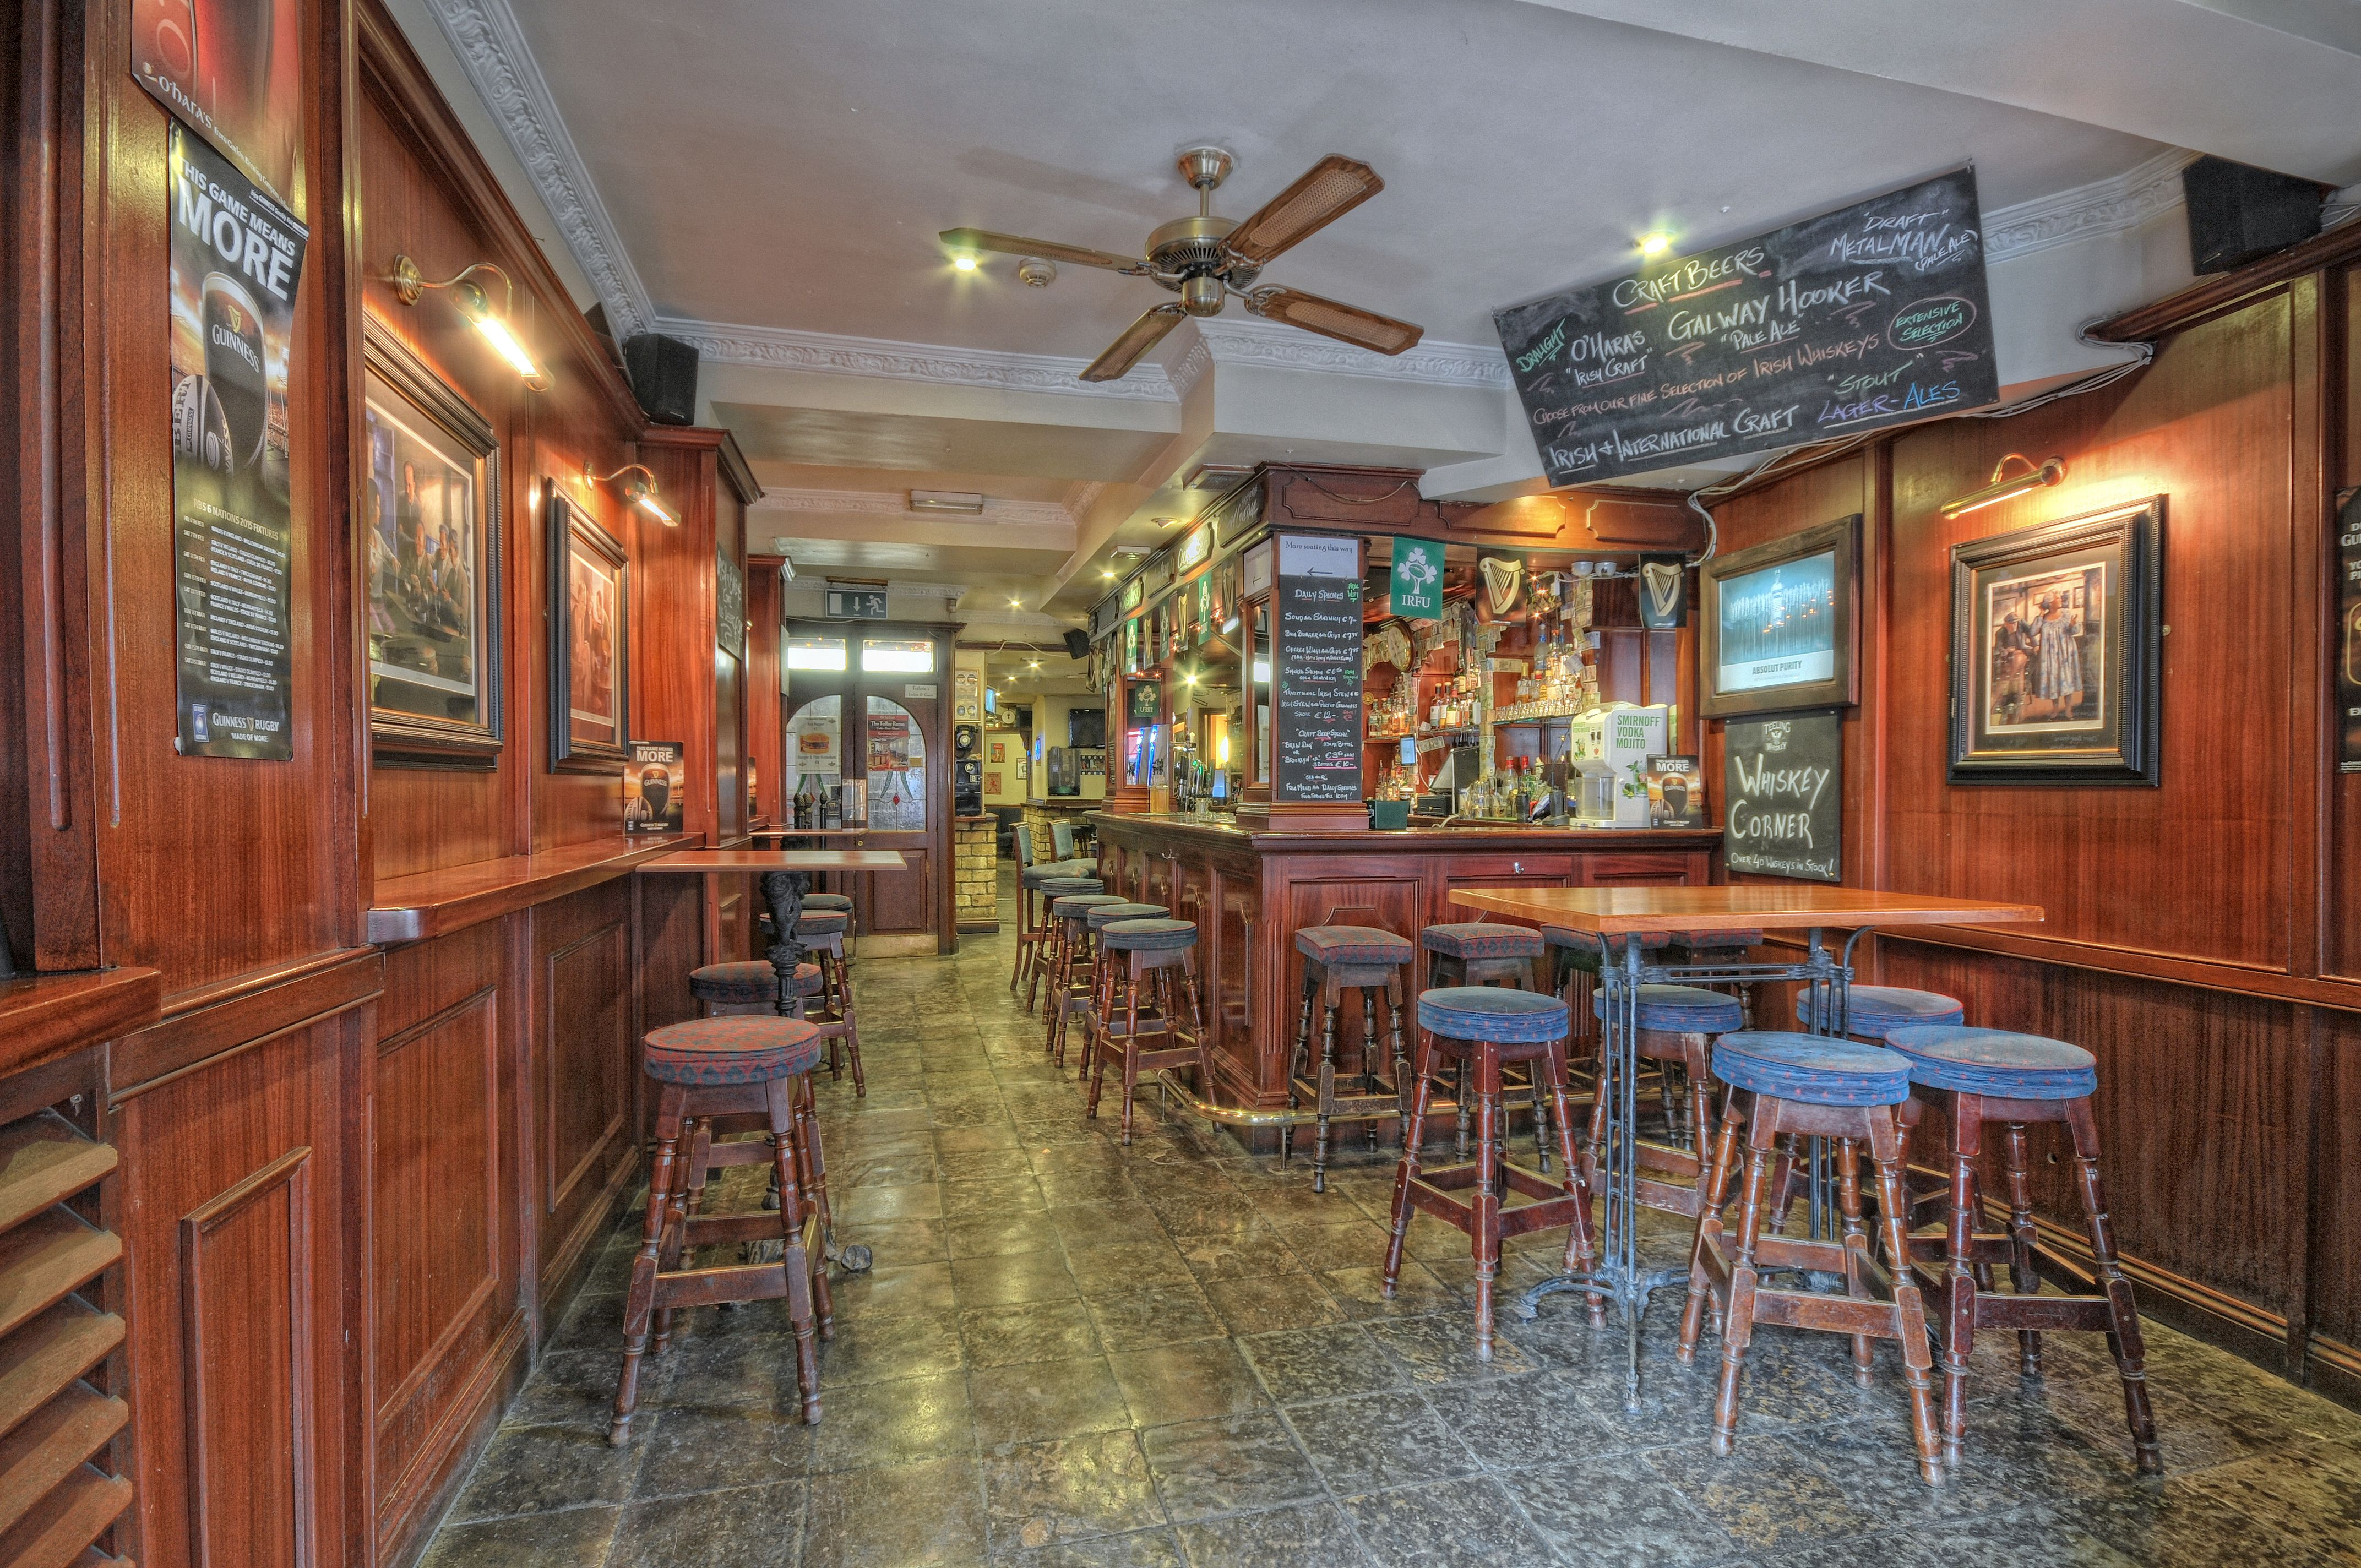 The Bankers Bar